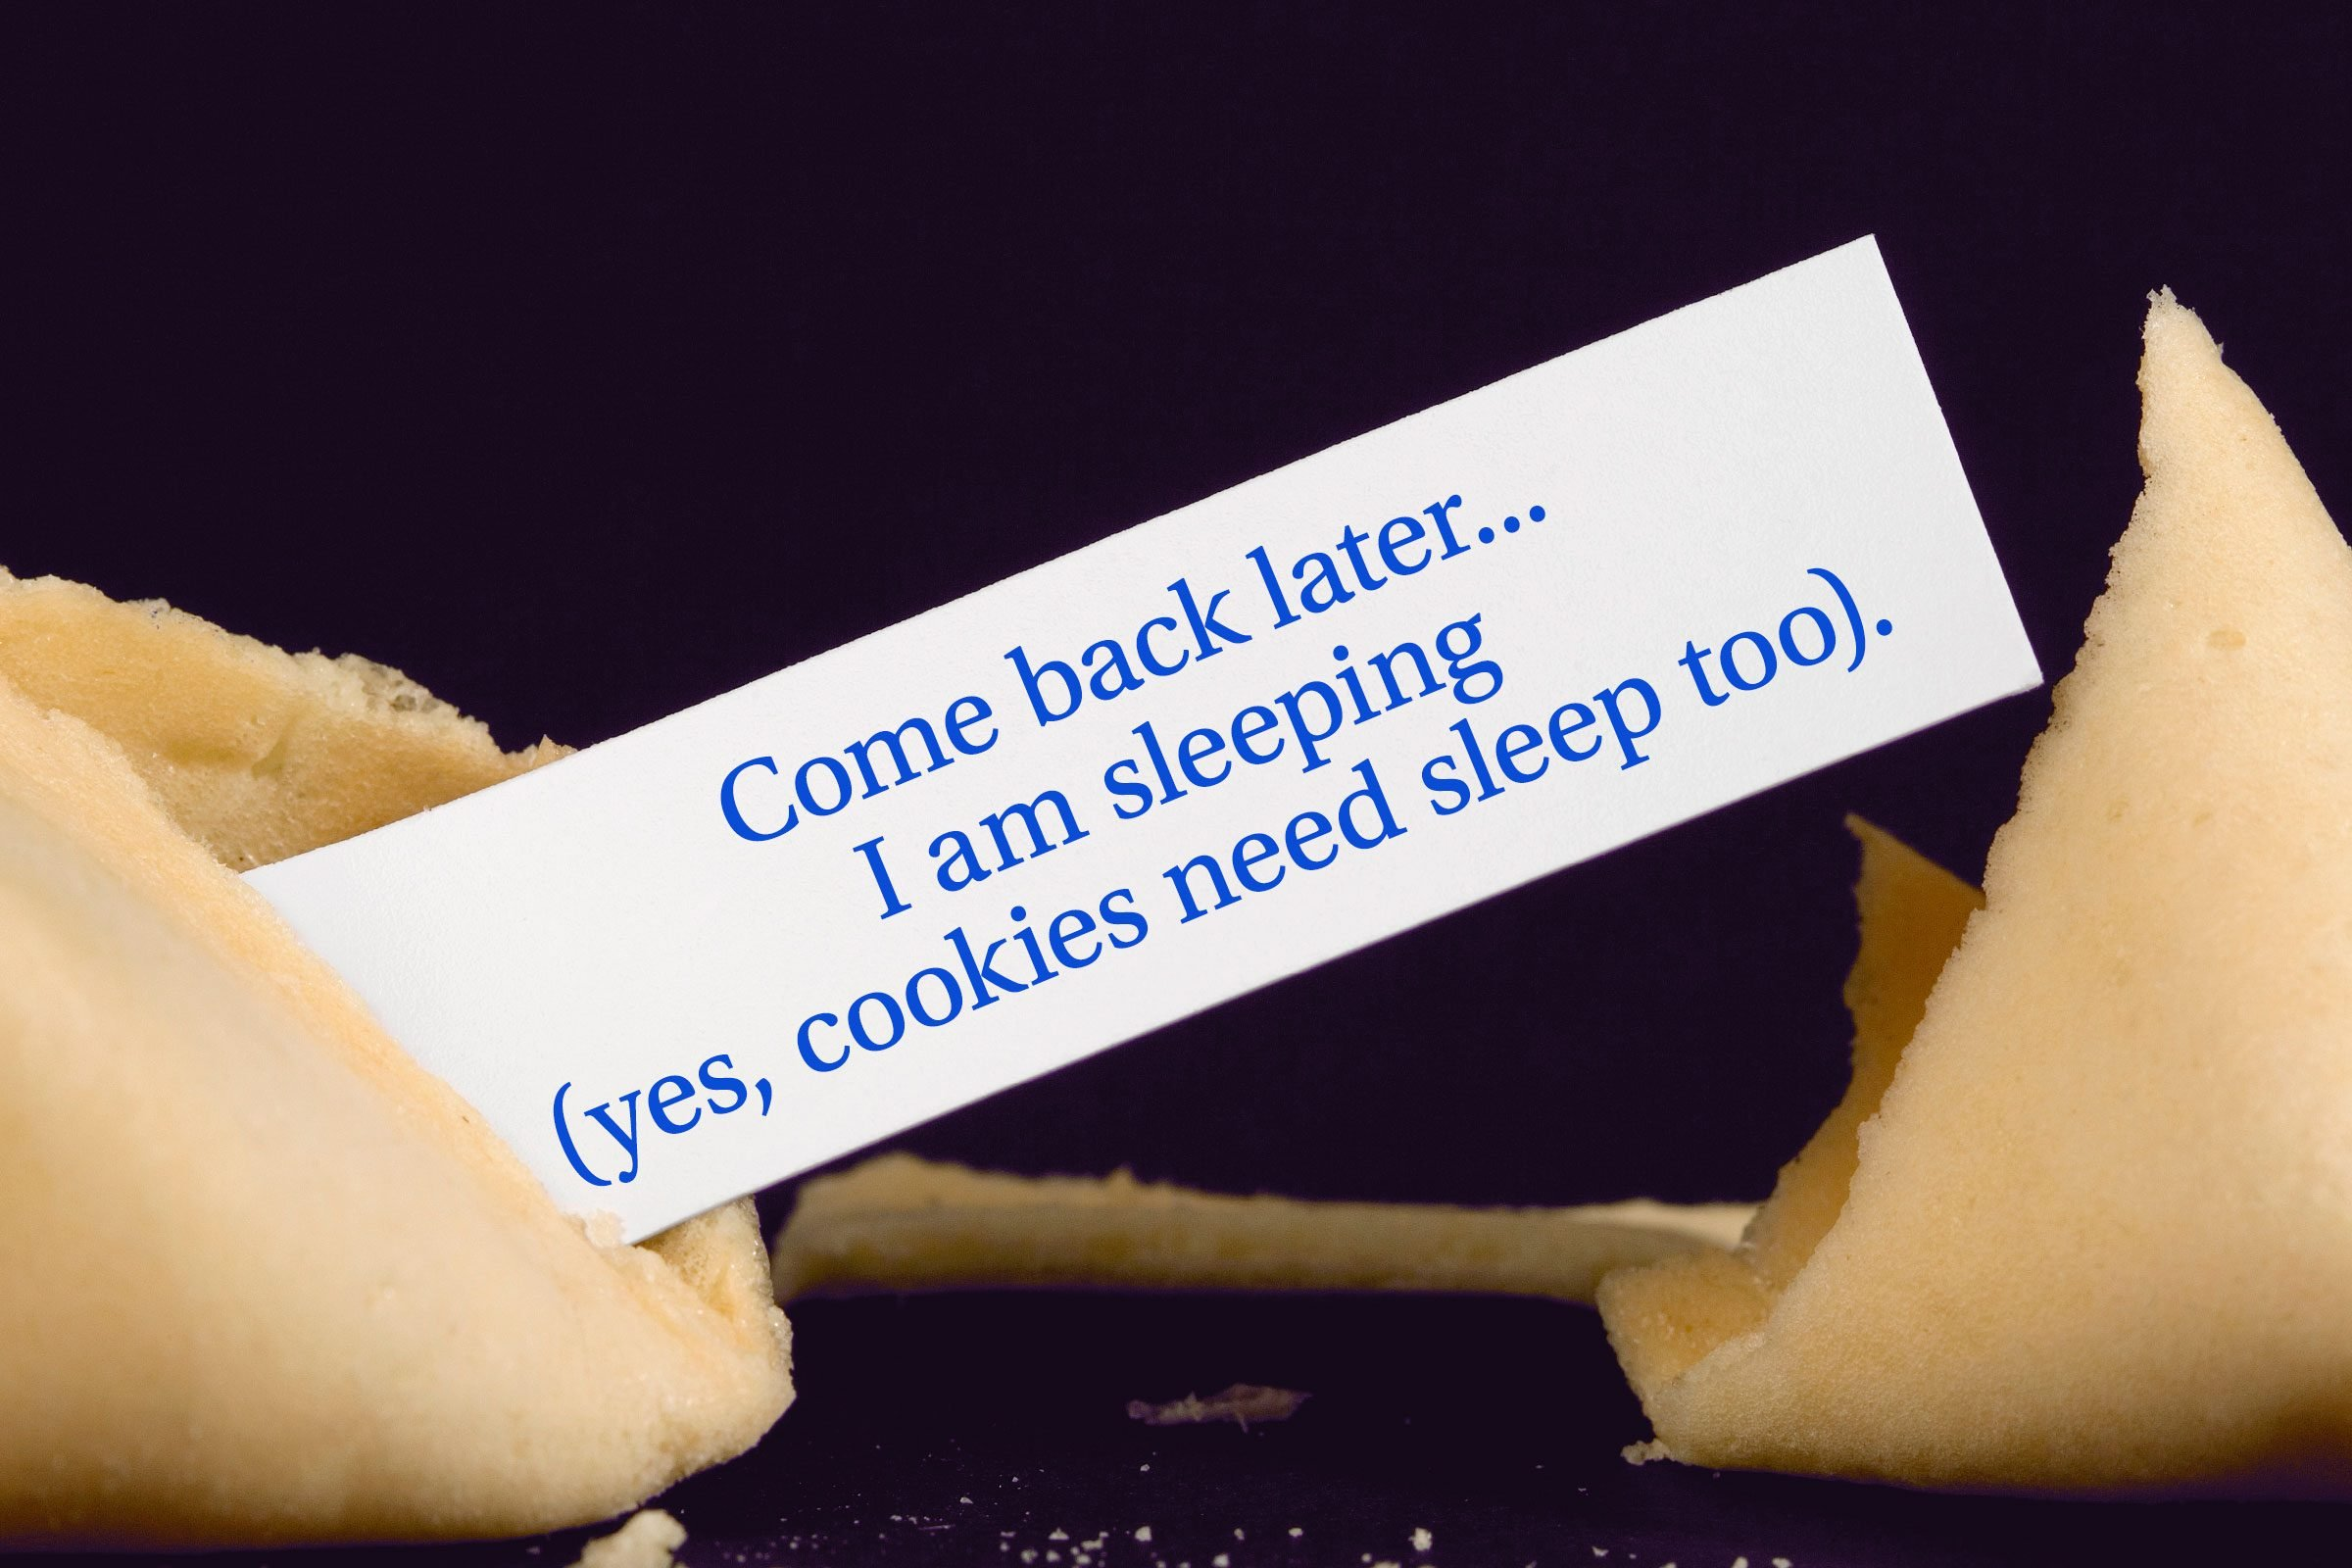 For image: Come back later...I am sleeping (yes, cookies need sleep too).